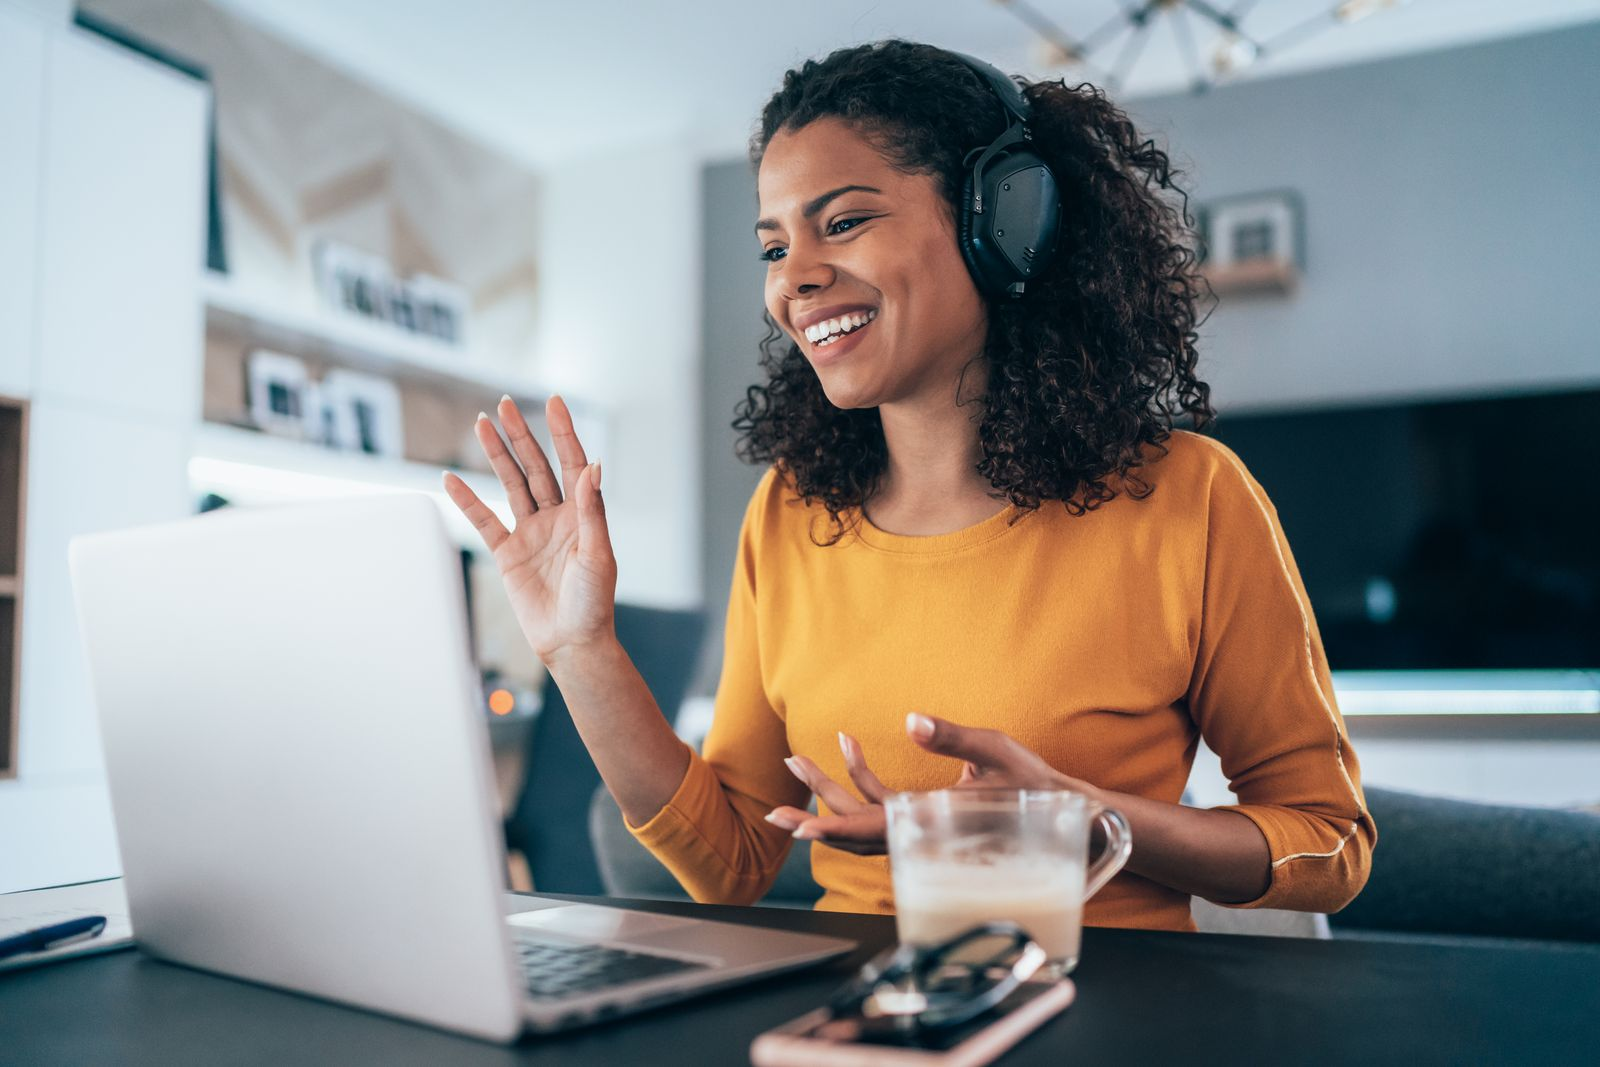 Woman videoconferencing from home office